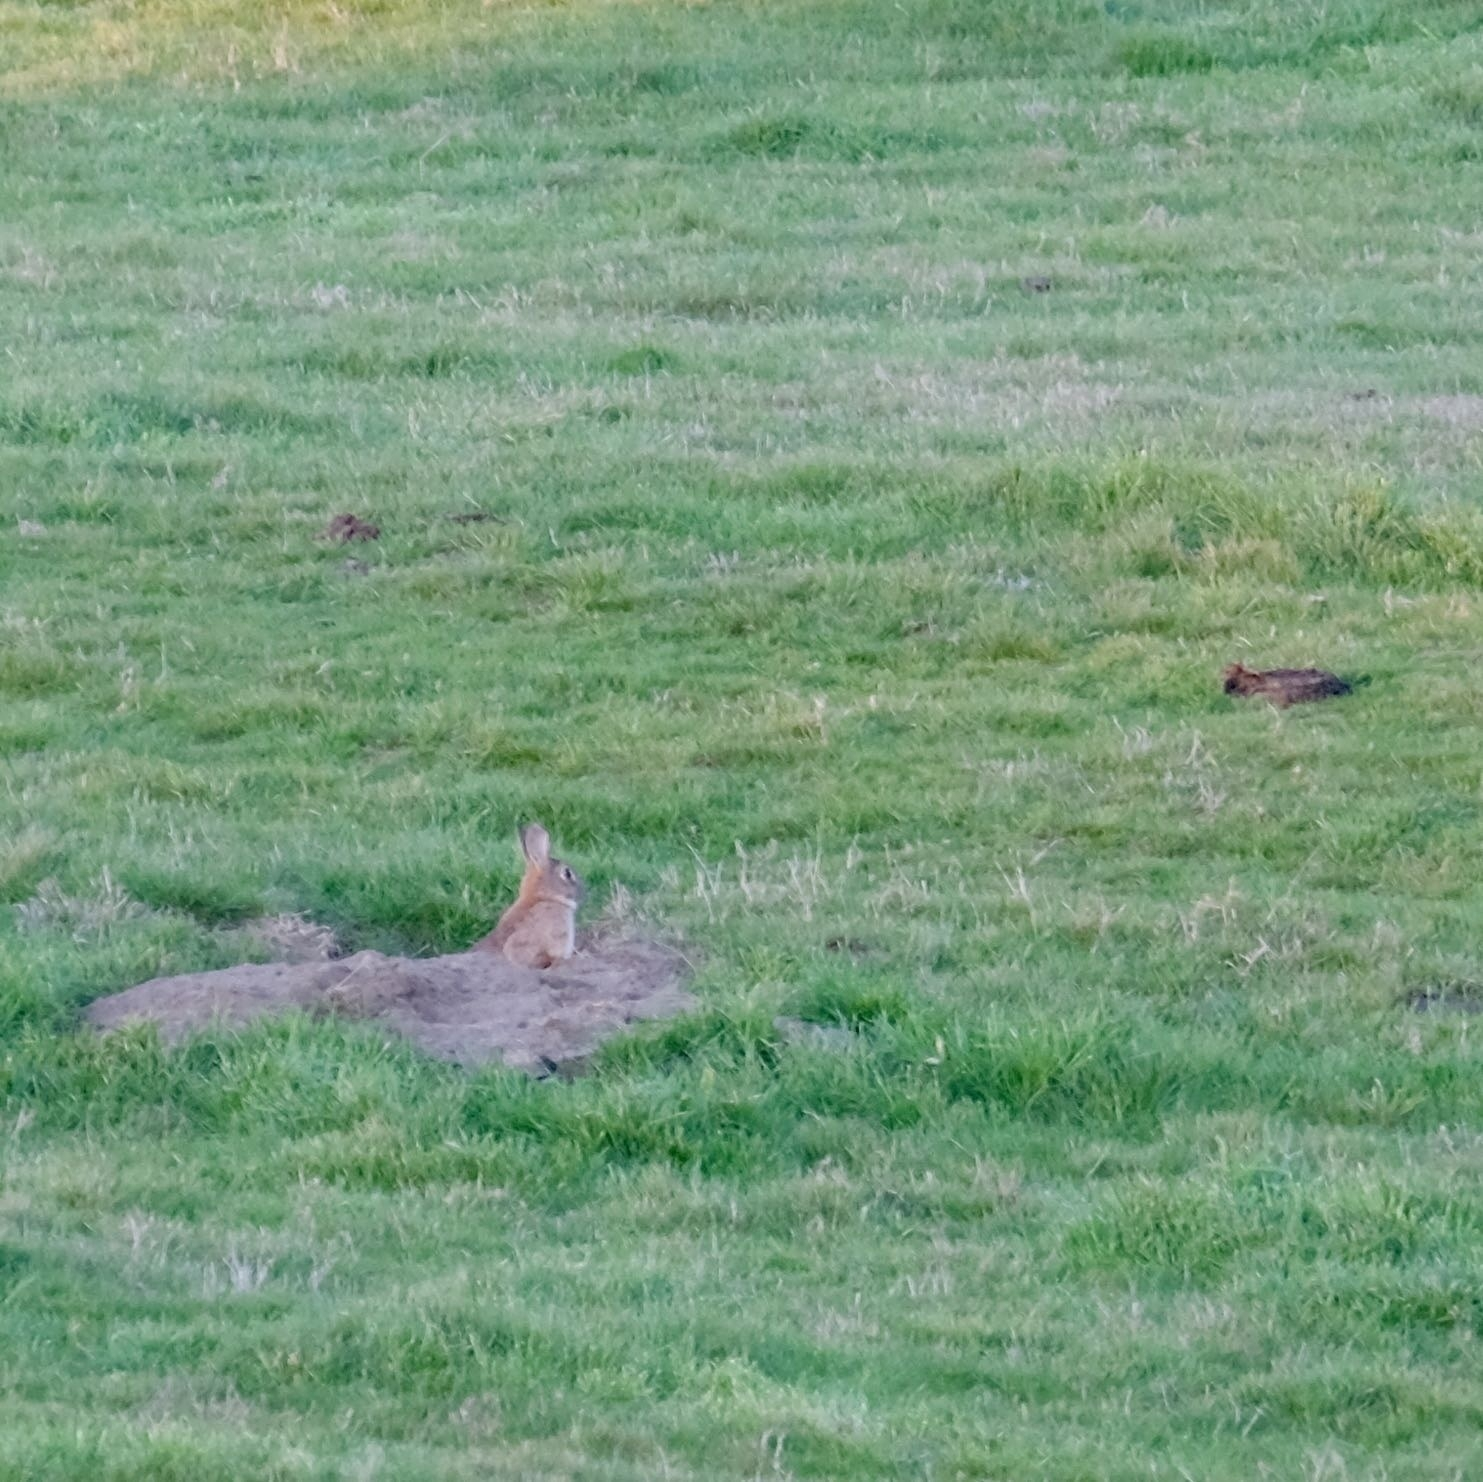 Rabbit at the top of a burrow in a green paddock.